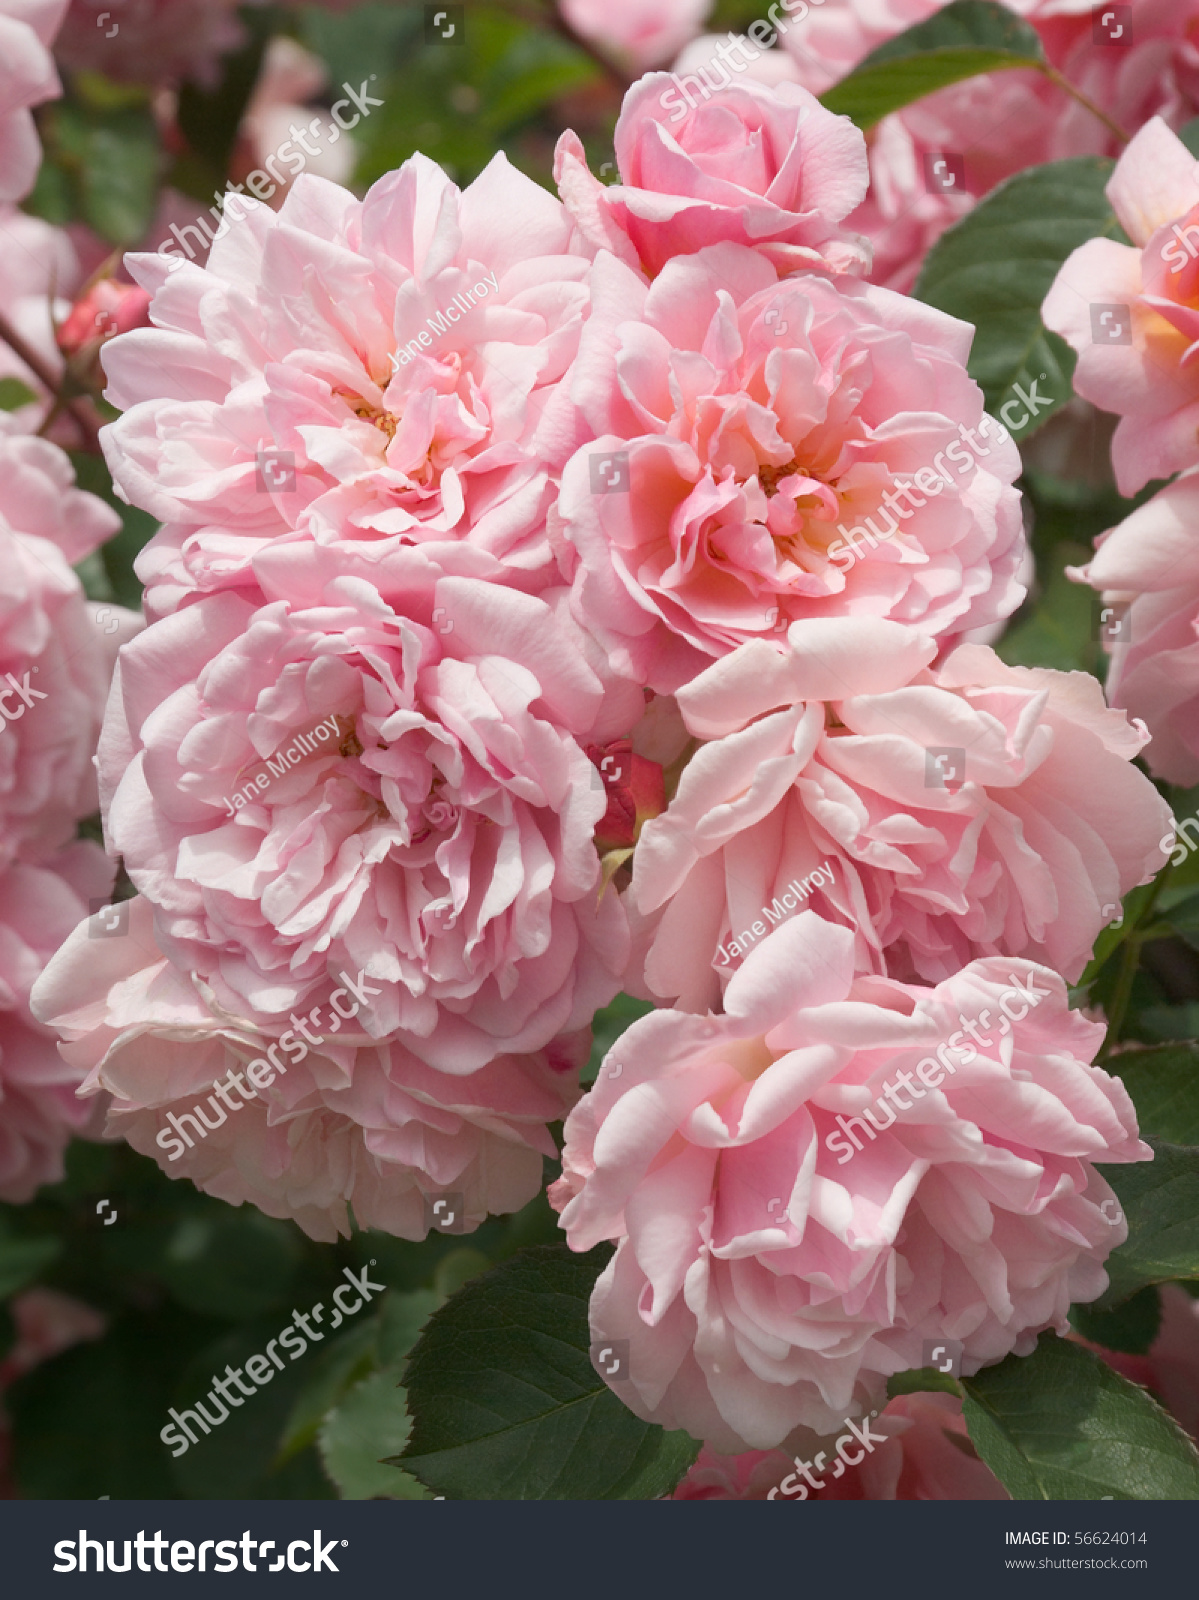 Tightly Packed Cluster Of Scented Pink Flowers On The Old